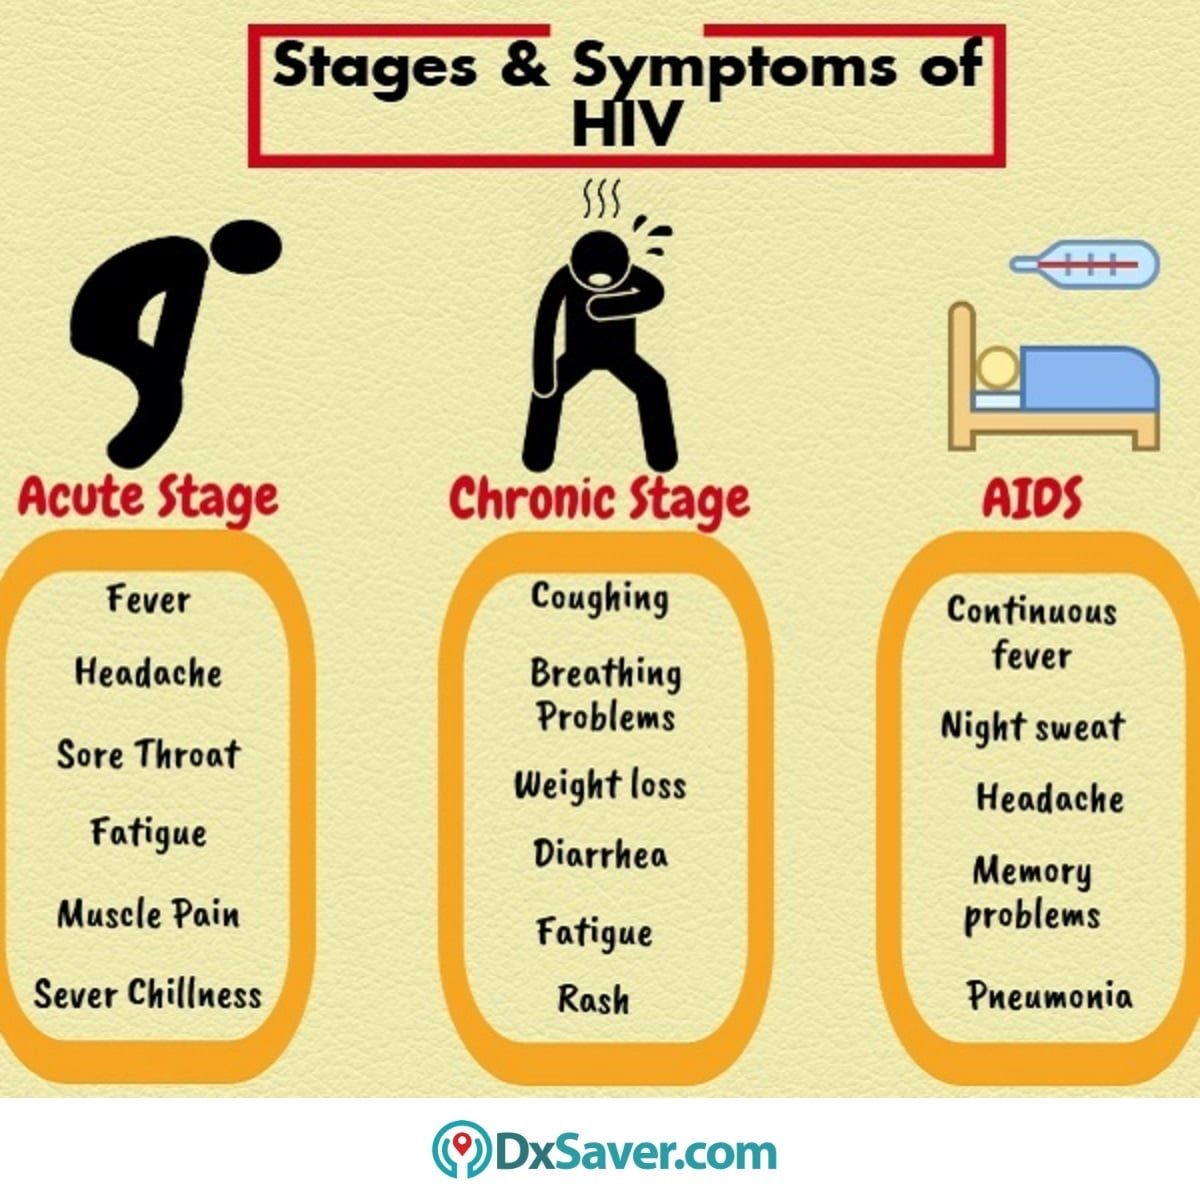 Know more about the symptoms of HIV in different stages.